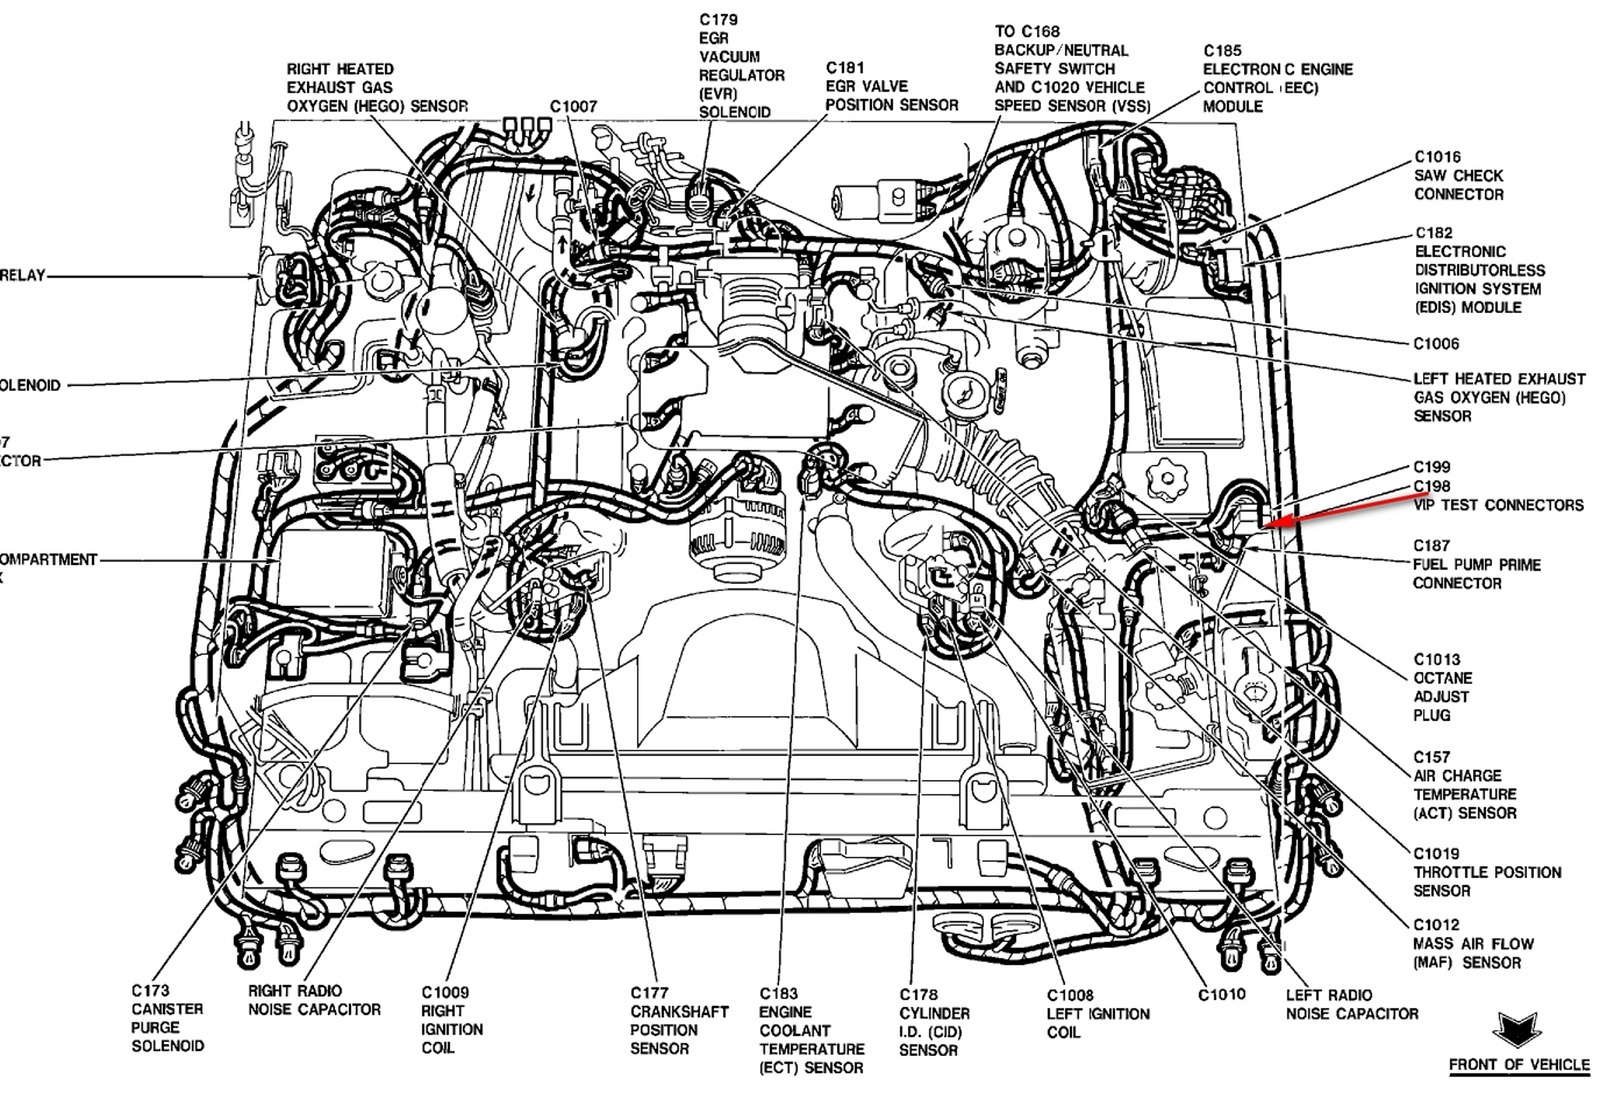 1997 Lincoln Town Car Engine Diagram Anything Wiring Diagrams U2022 Rh  Flowhq Co 2004 Mustang 1995